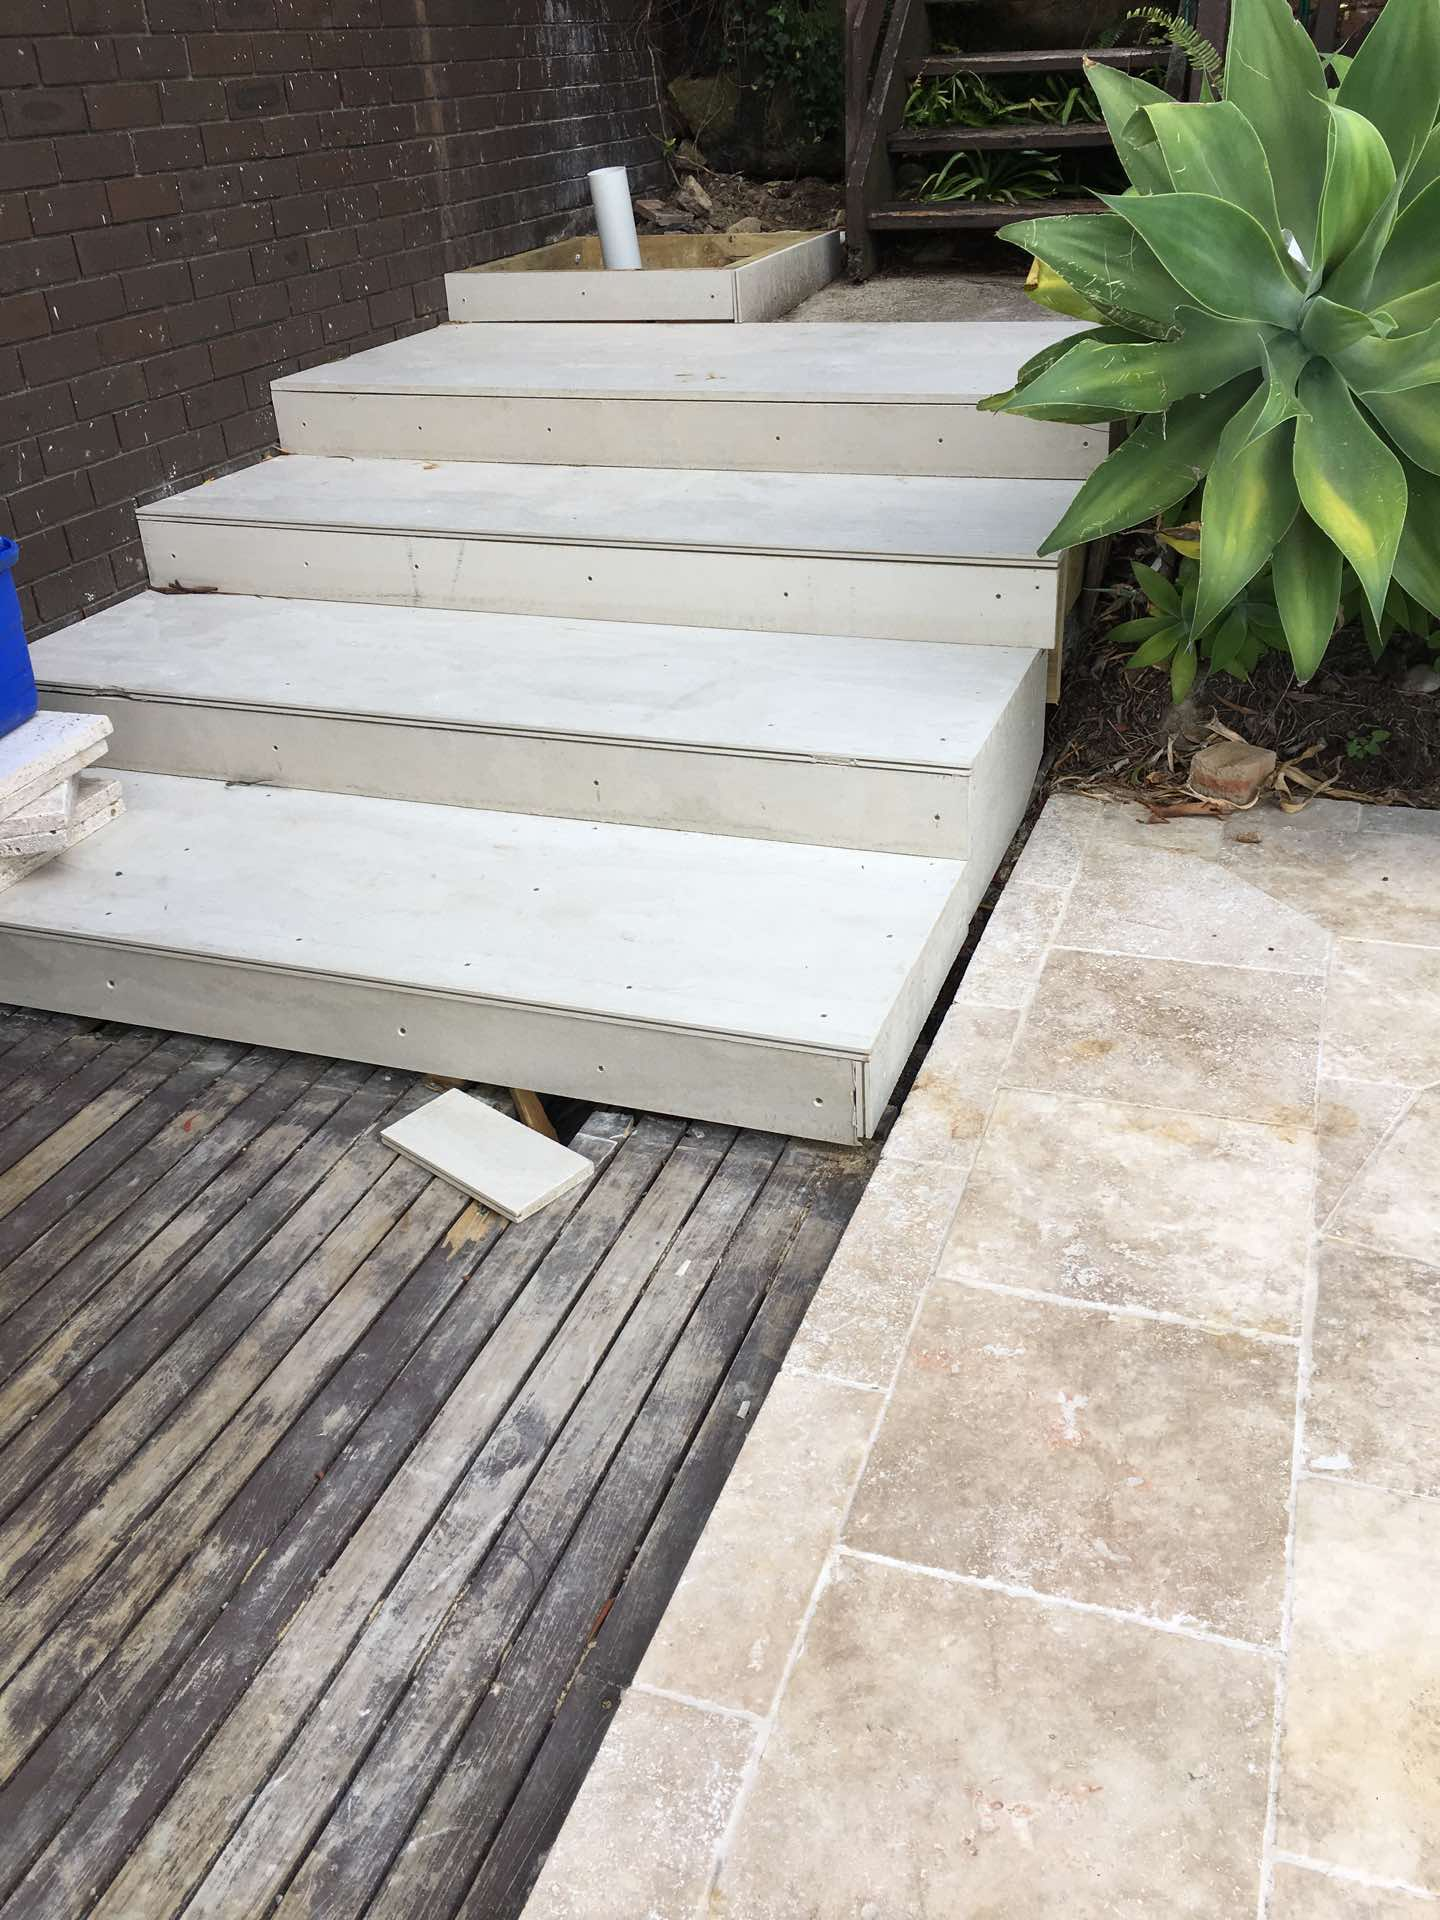 Stage 1. New stairs and outdoor shower base ready for tiling Clontarf, NSW